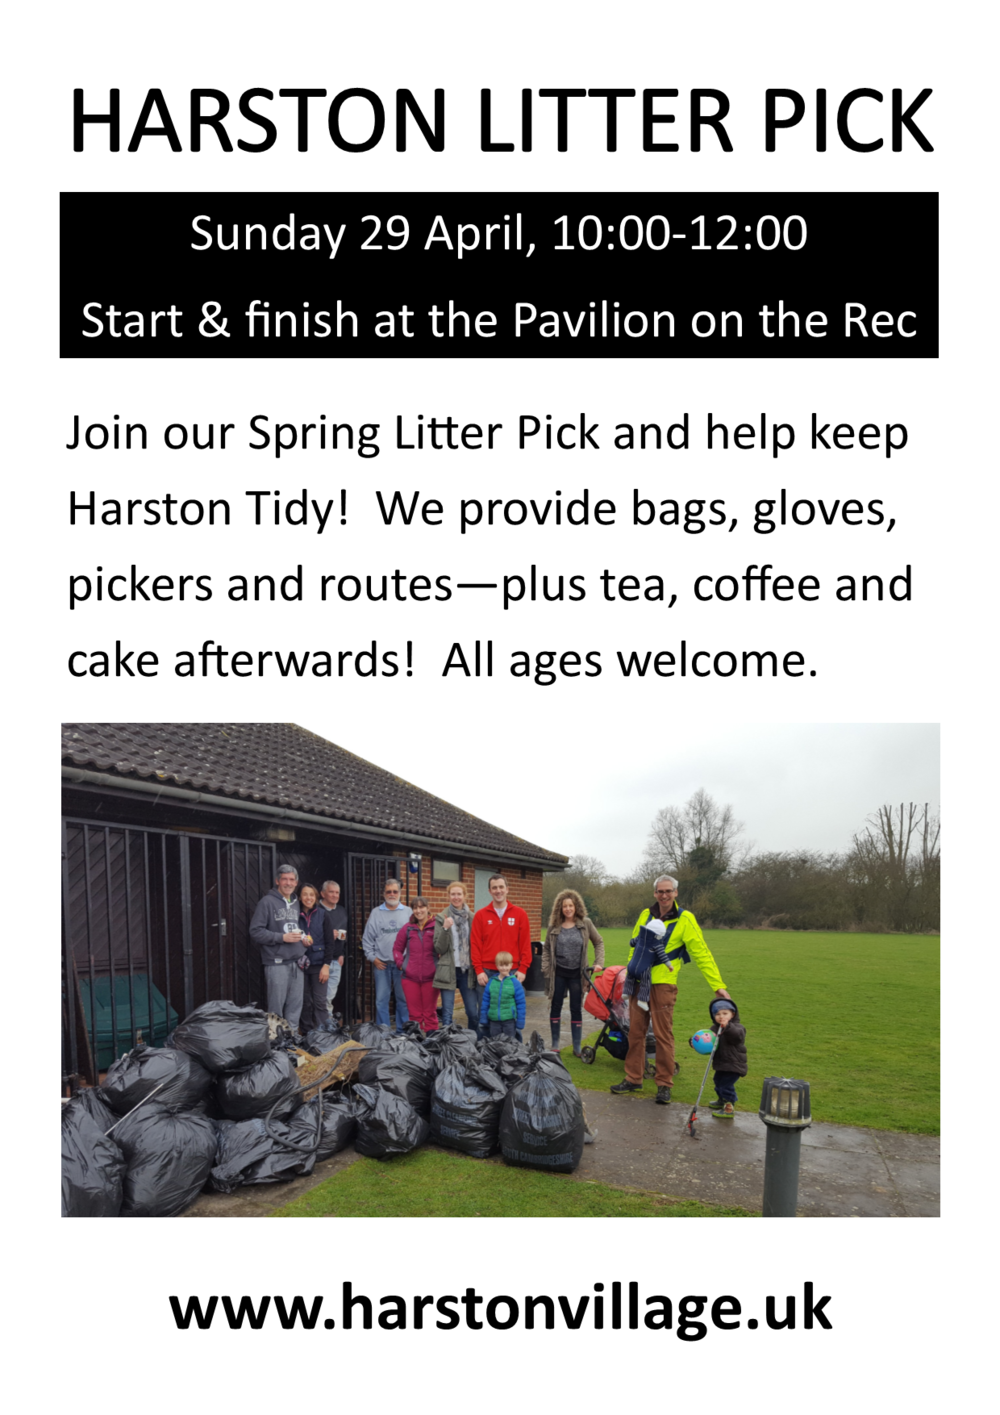 Litter-pick poster March 2018.png